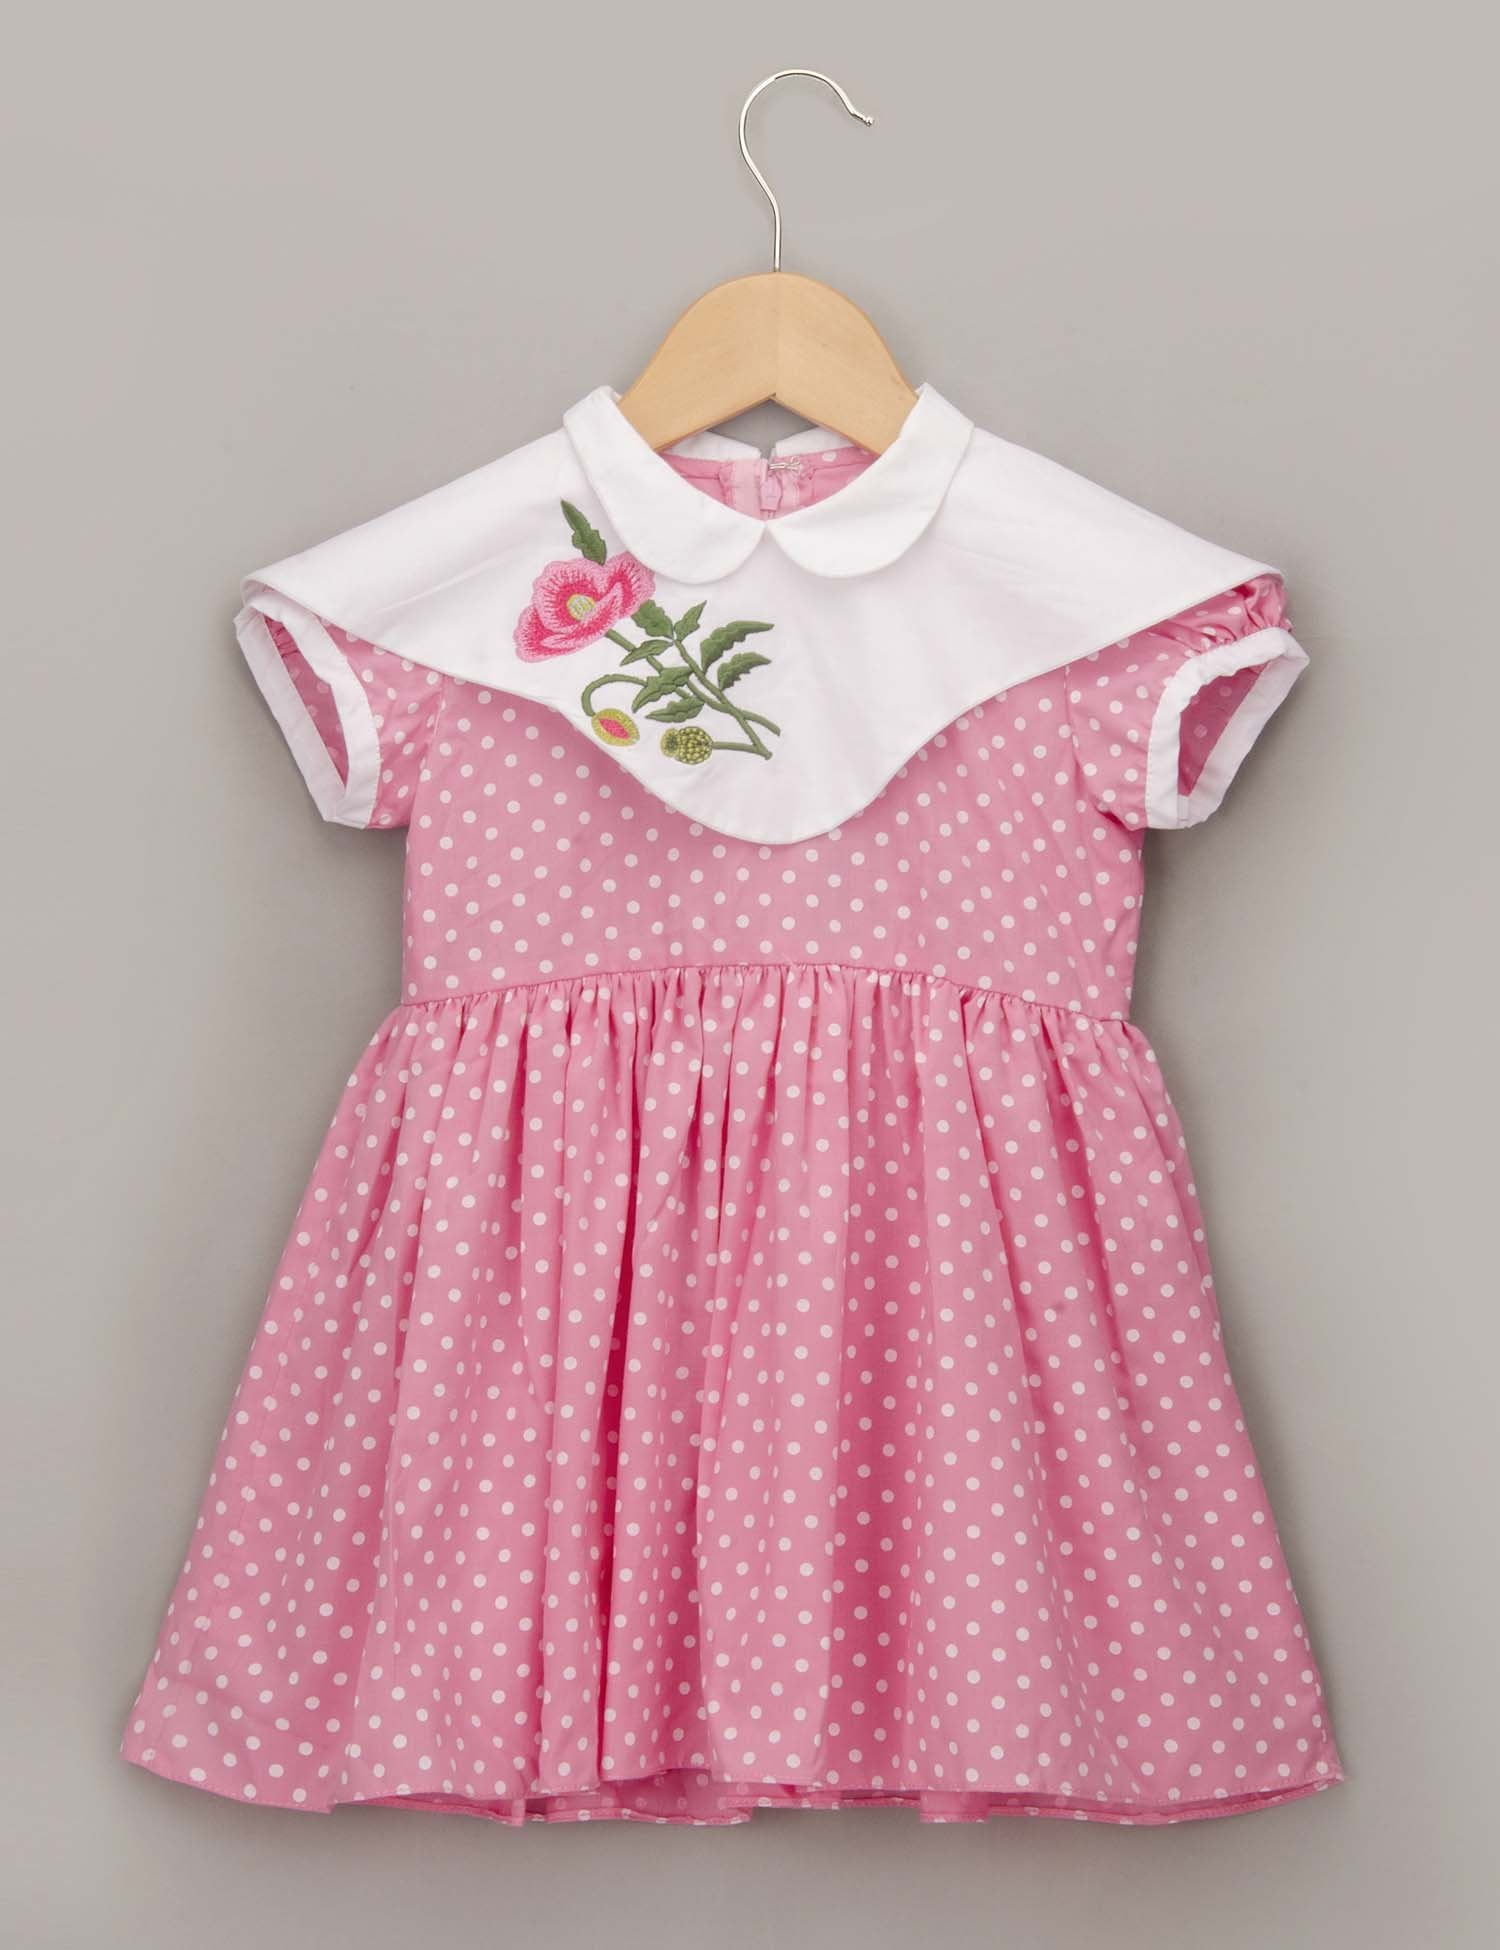 Pink Polka Dot Dress with Double Collar for Girls